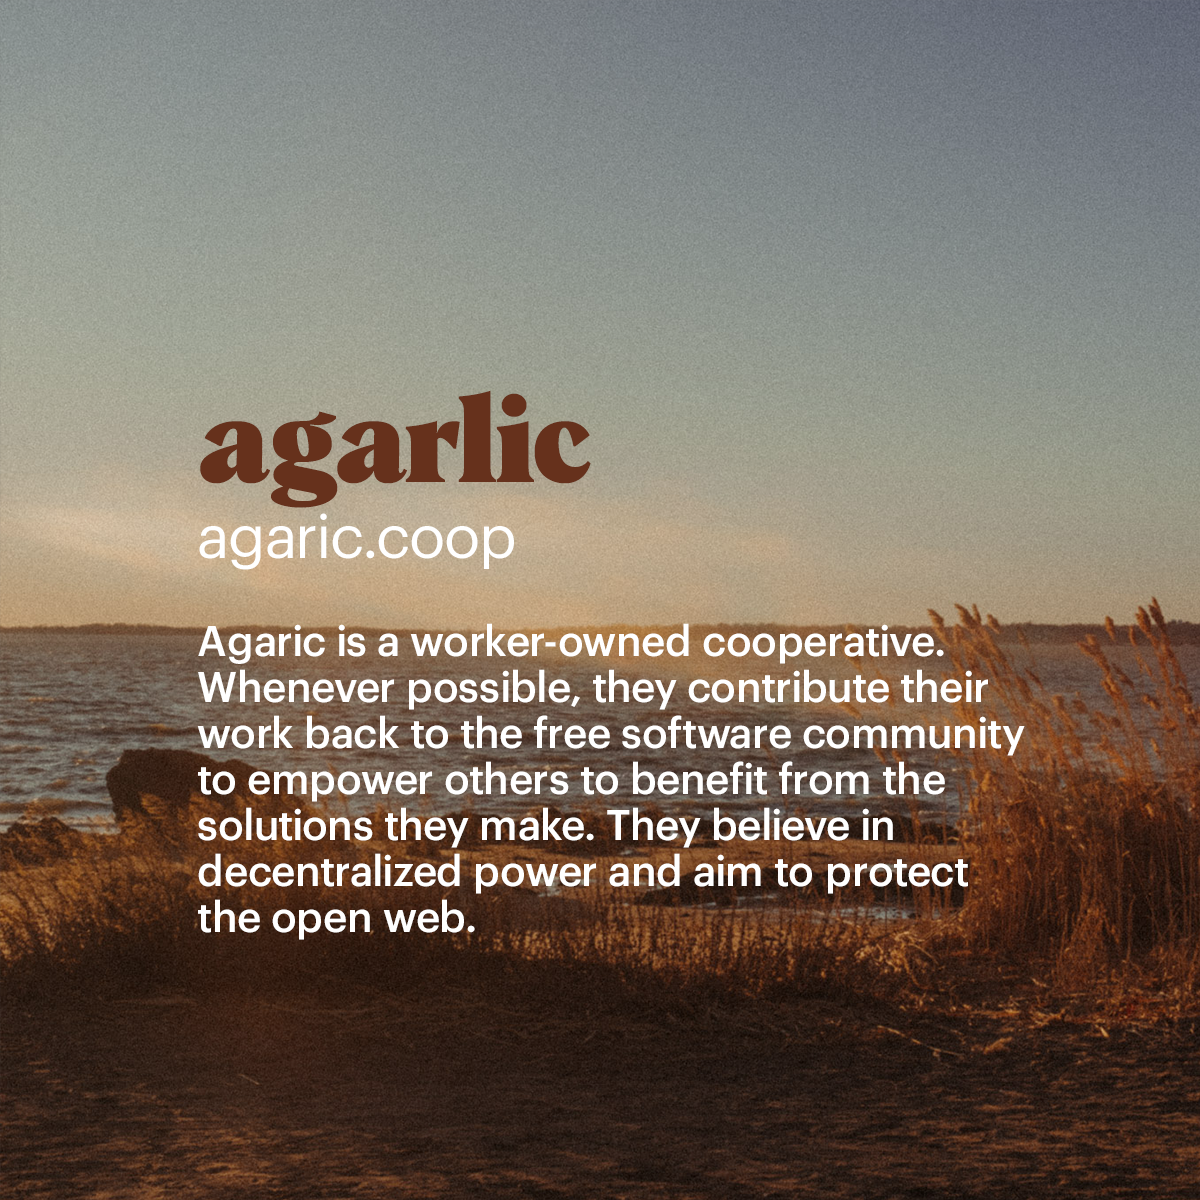 agarlic Agaric is a worker-owned cooperative. Whenever possible, they contribute their  work back to the free software community  to empower others to benefit from the  solutions they make. They believe in  decentralized power and aim to protect  the open web. I first learned of  garlic after hearing  Michele 'Micky' Metts speak as a keynote in 2019 talking about data, the internet, And the dangers of governing forces. (Available on Youtube)